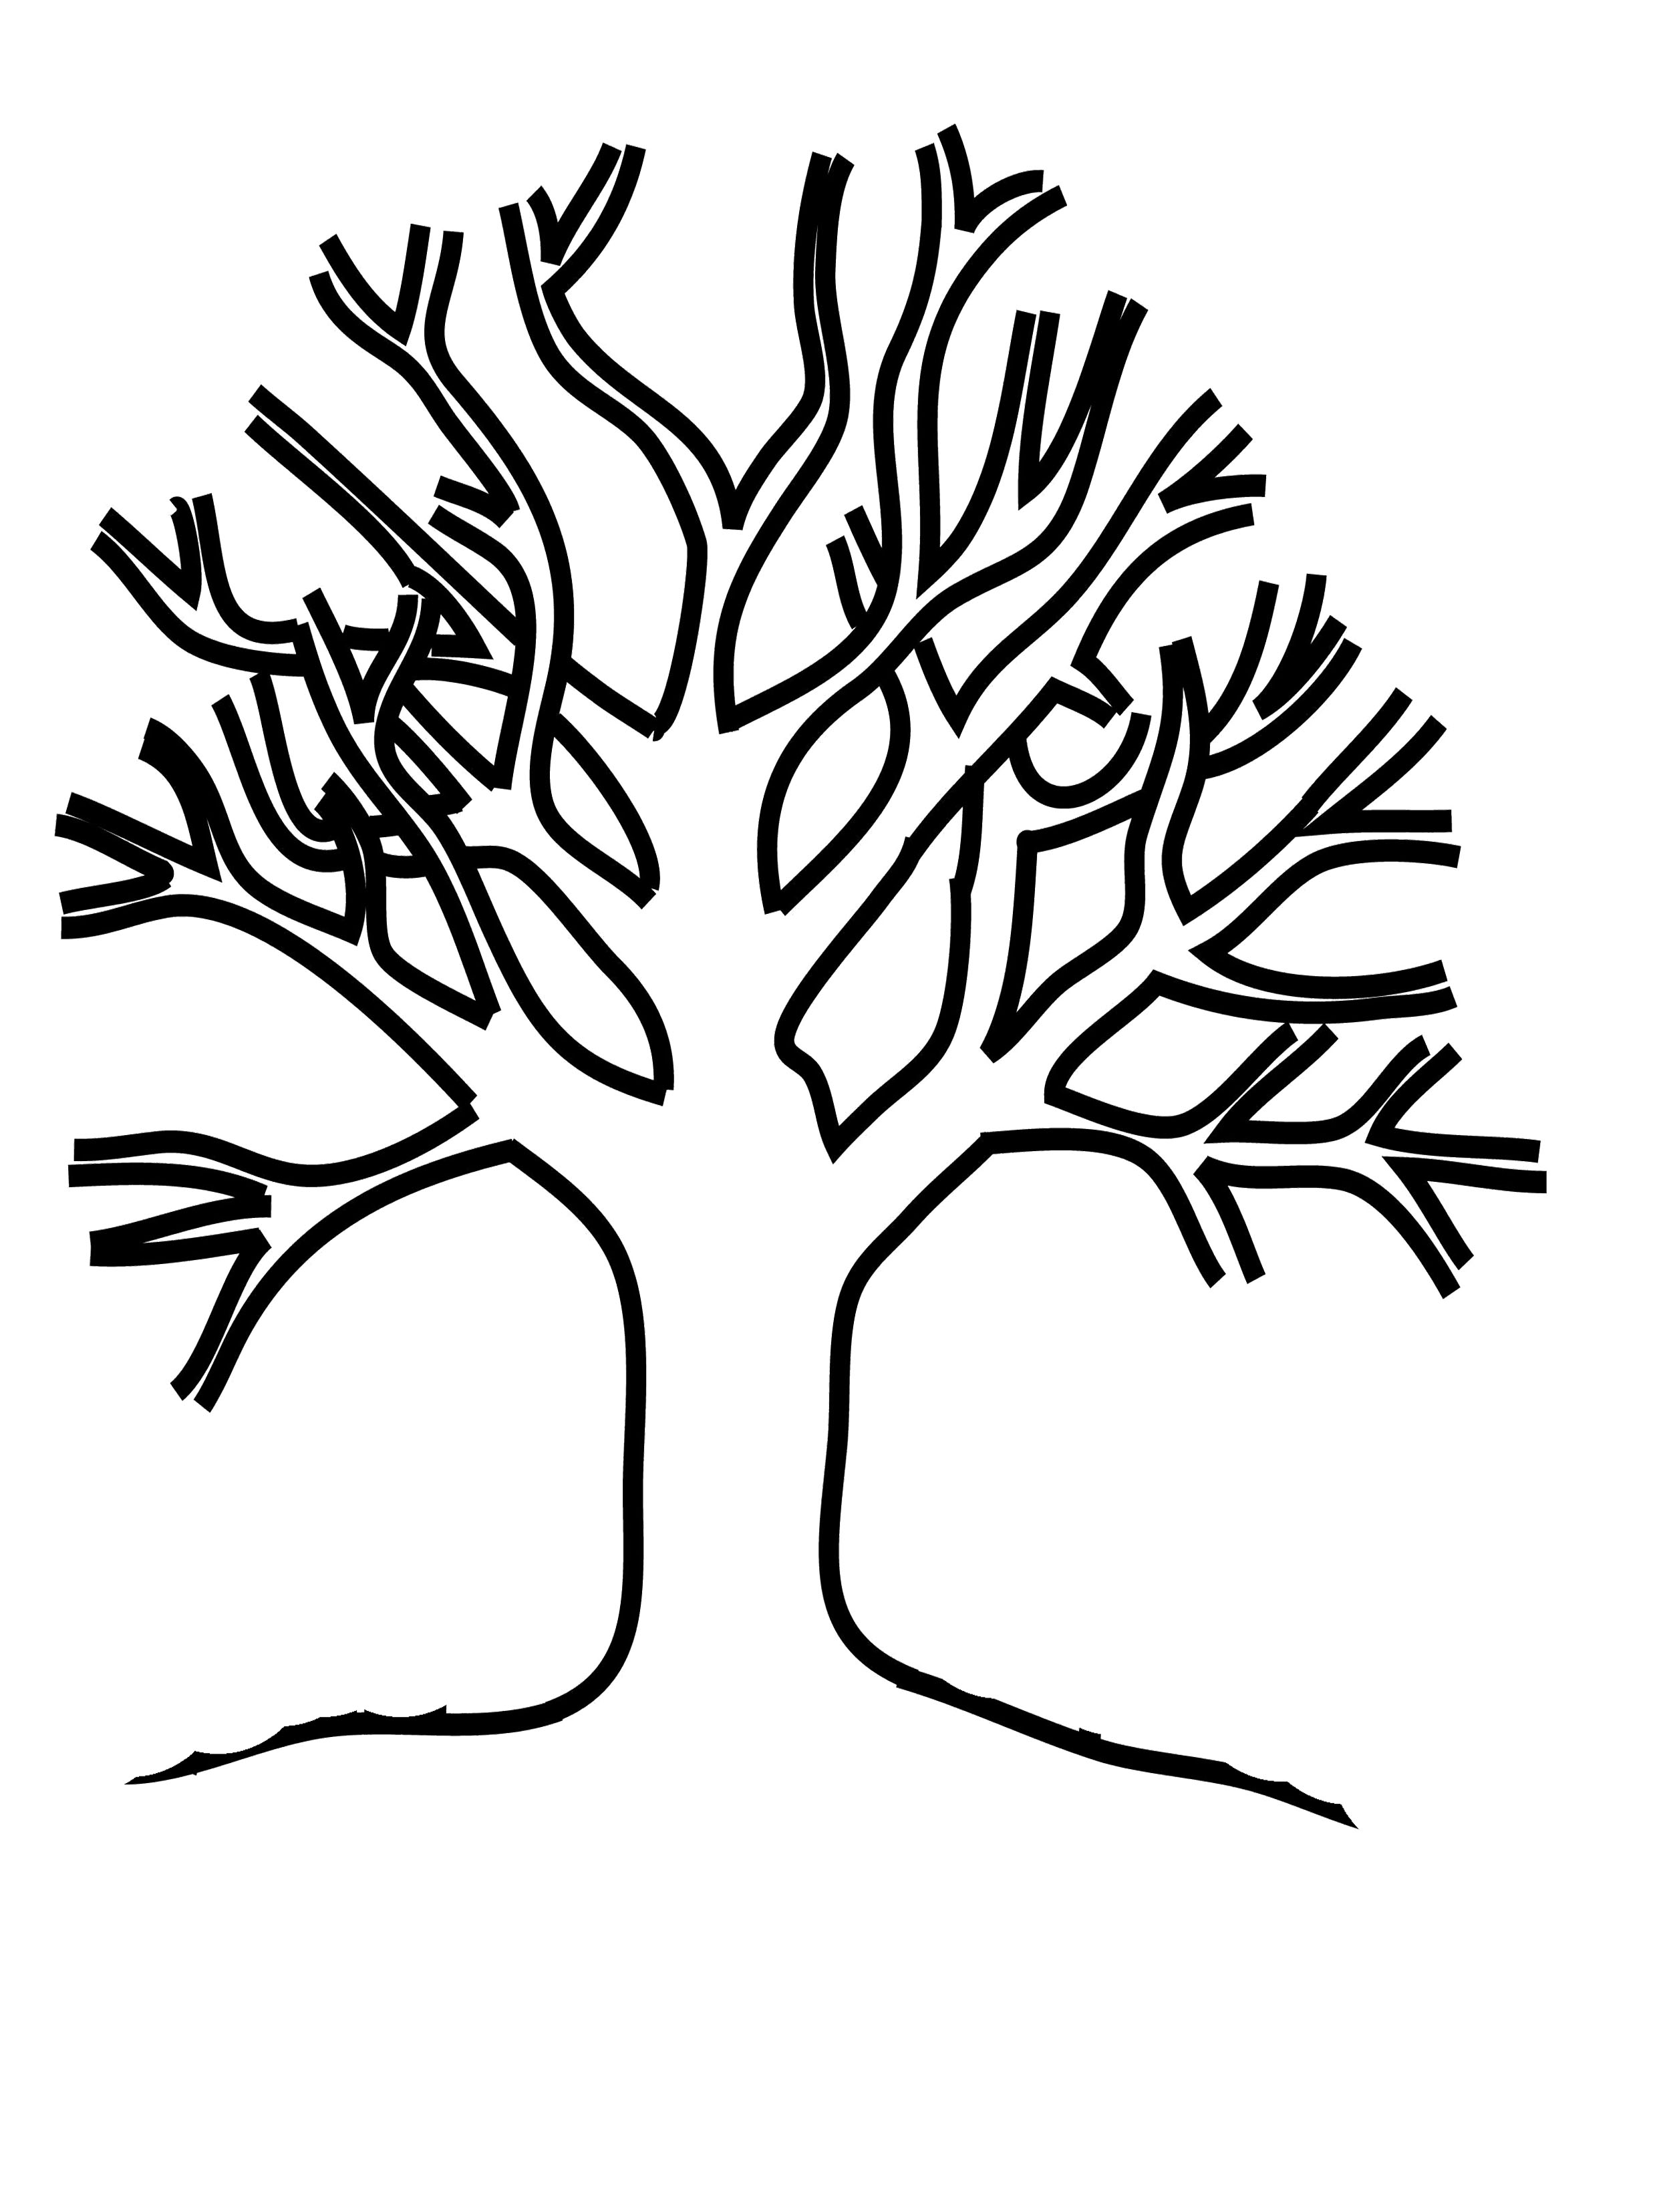 tree trunk coloring page tree trunk drawing at getdrawings free download page coloring tree trunk